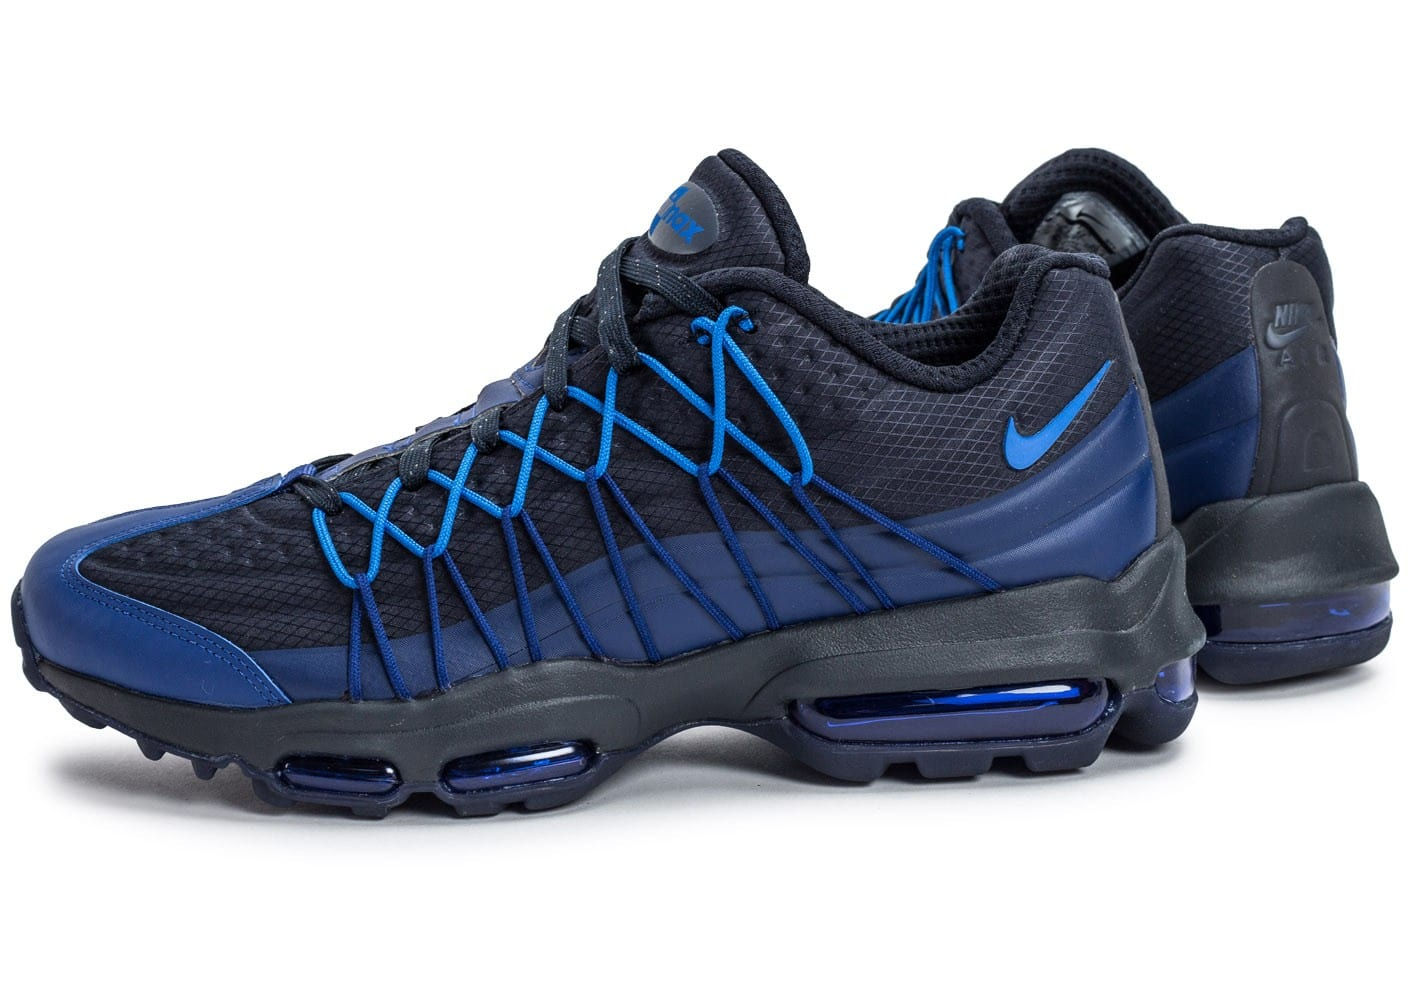 Nike Air Max 95 Ultra Se bleu marine Chaussures Baskets